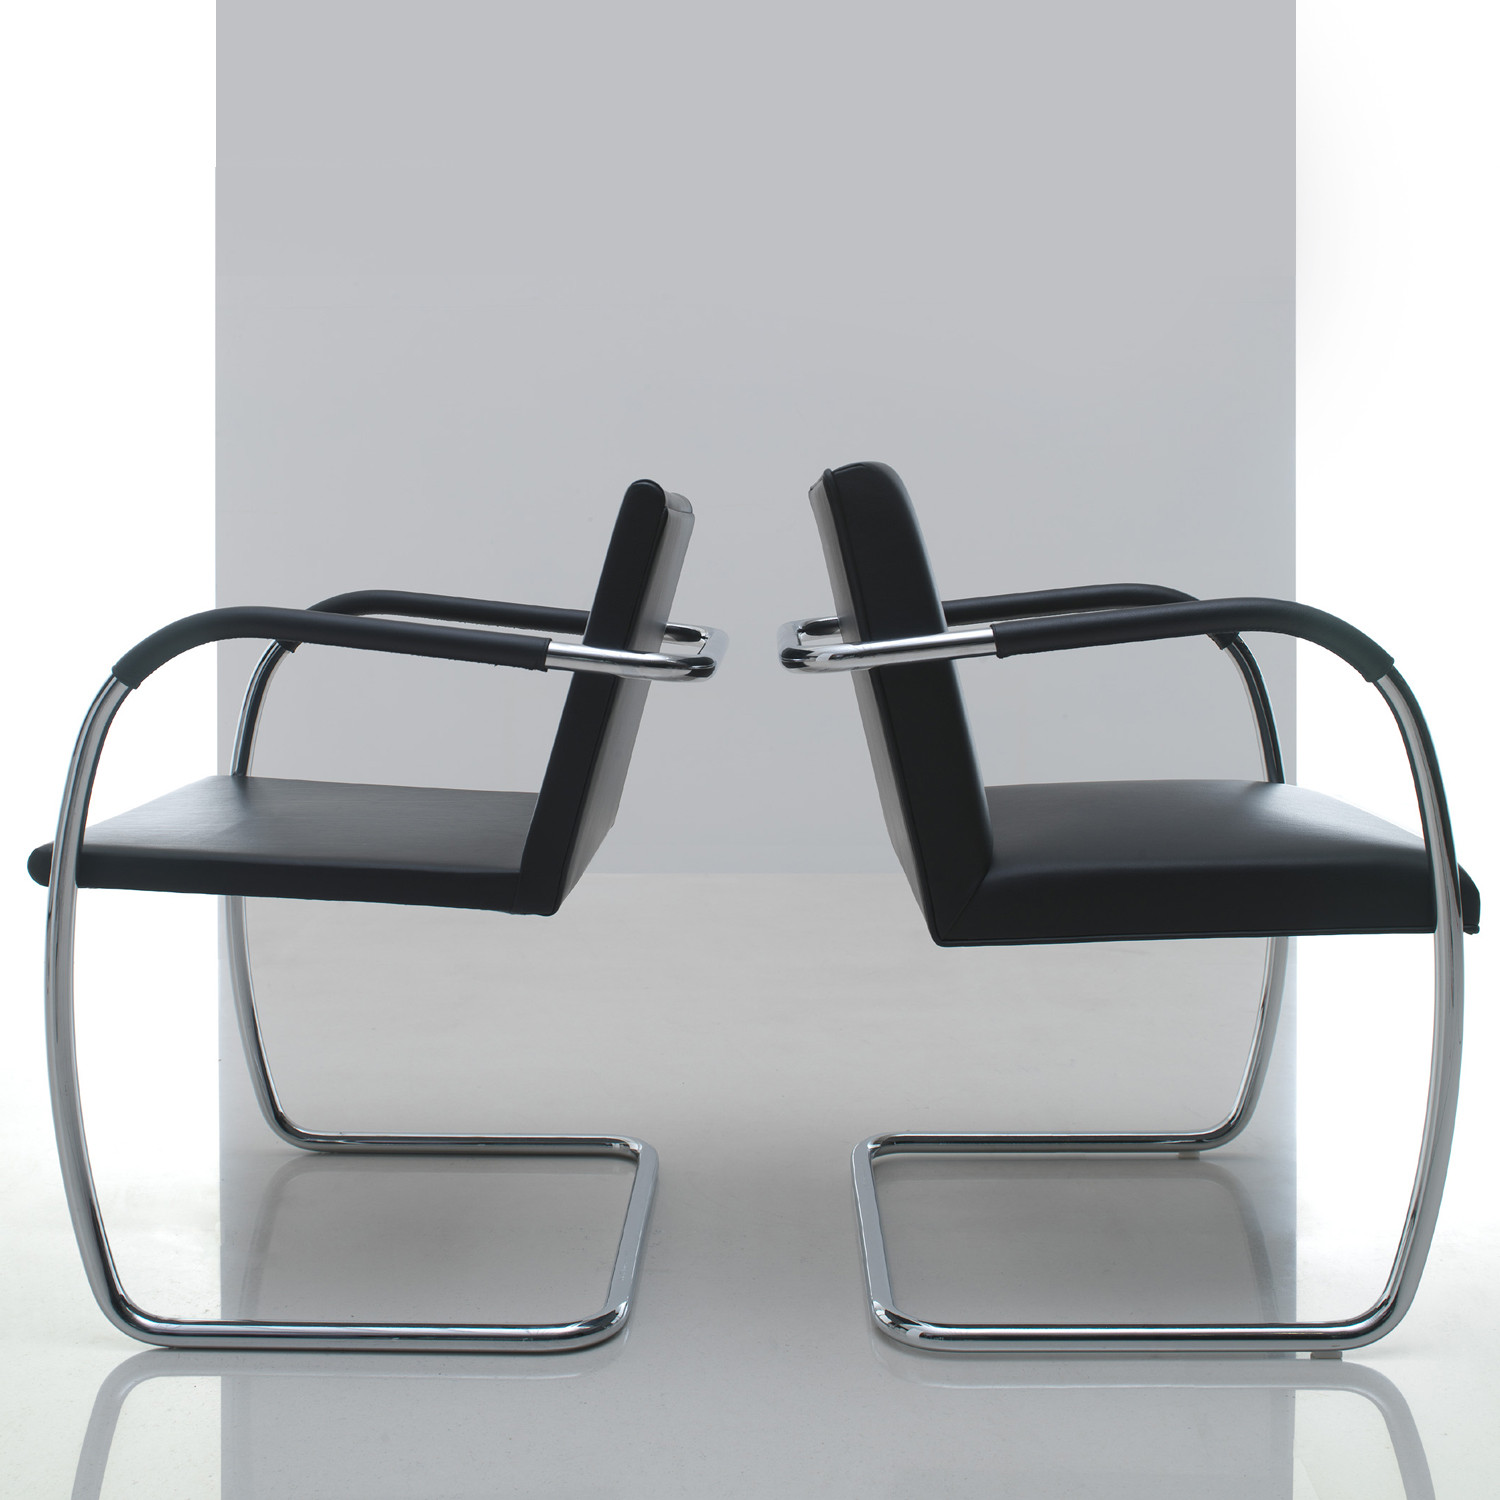 Tubular Brno Cantilever Chairs by Knoll